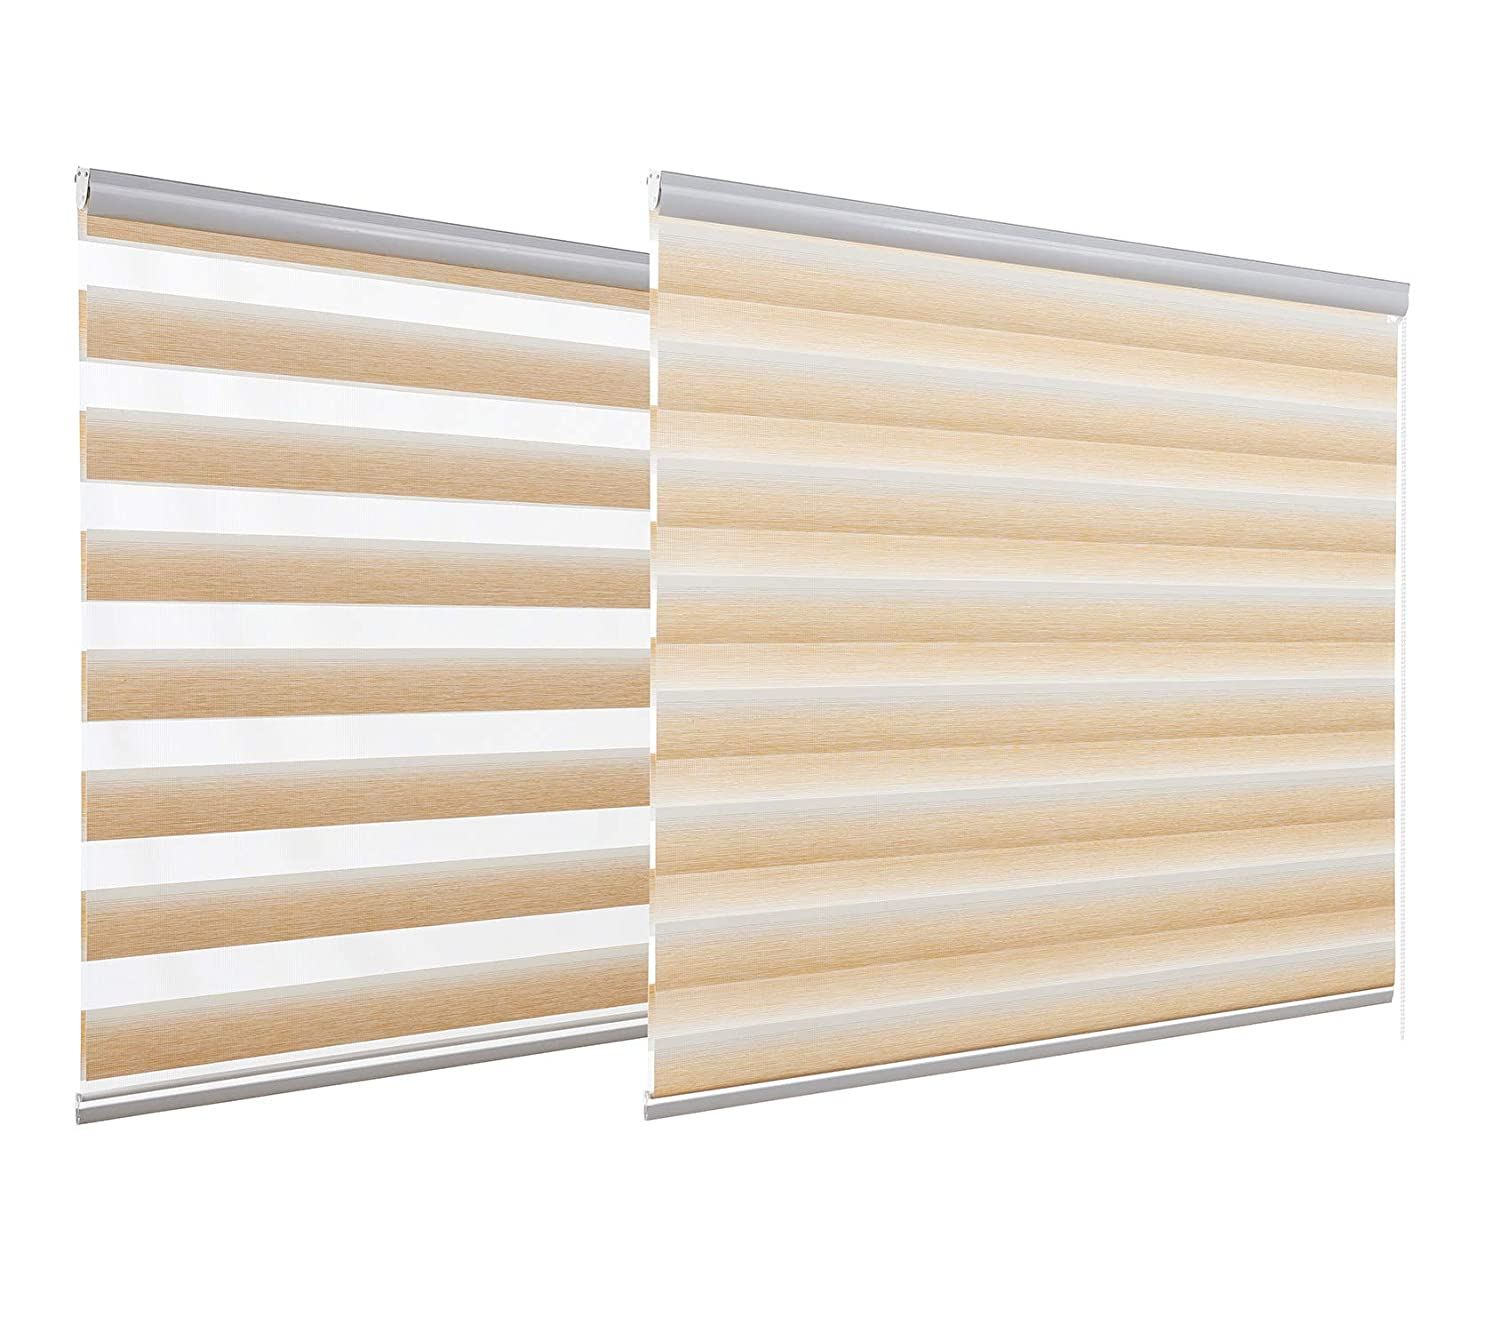 HSYLYM Window Blinds and Shades Office Wall Decor Room Darkening Outdoor Shades for Patio Roll Up (A01, 36x64) 36x64)